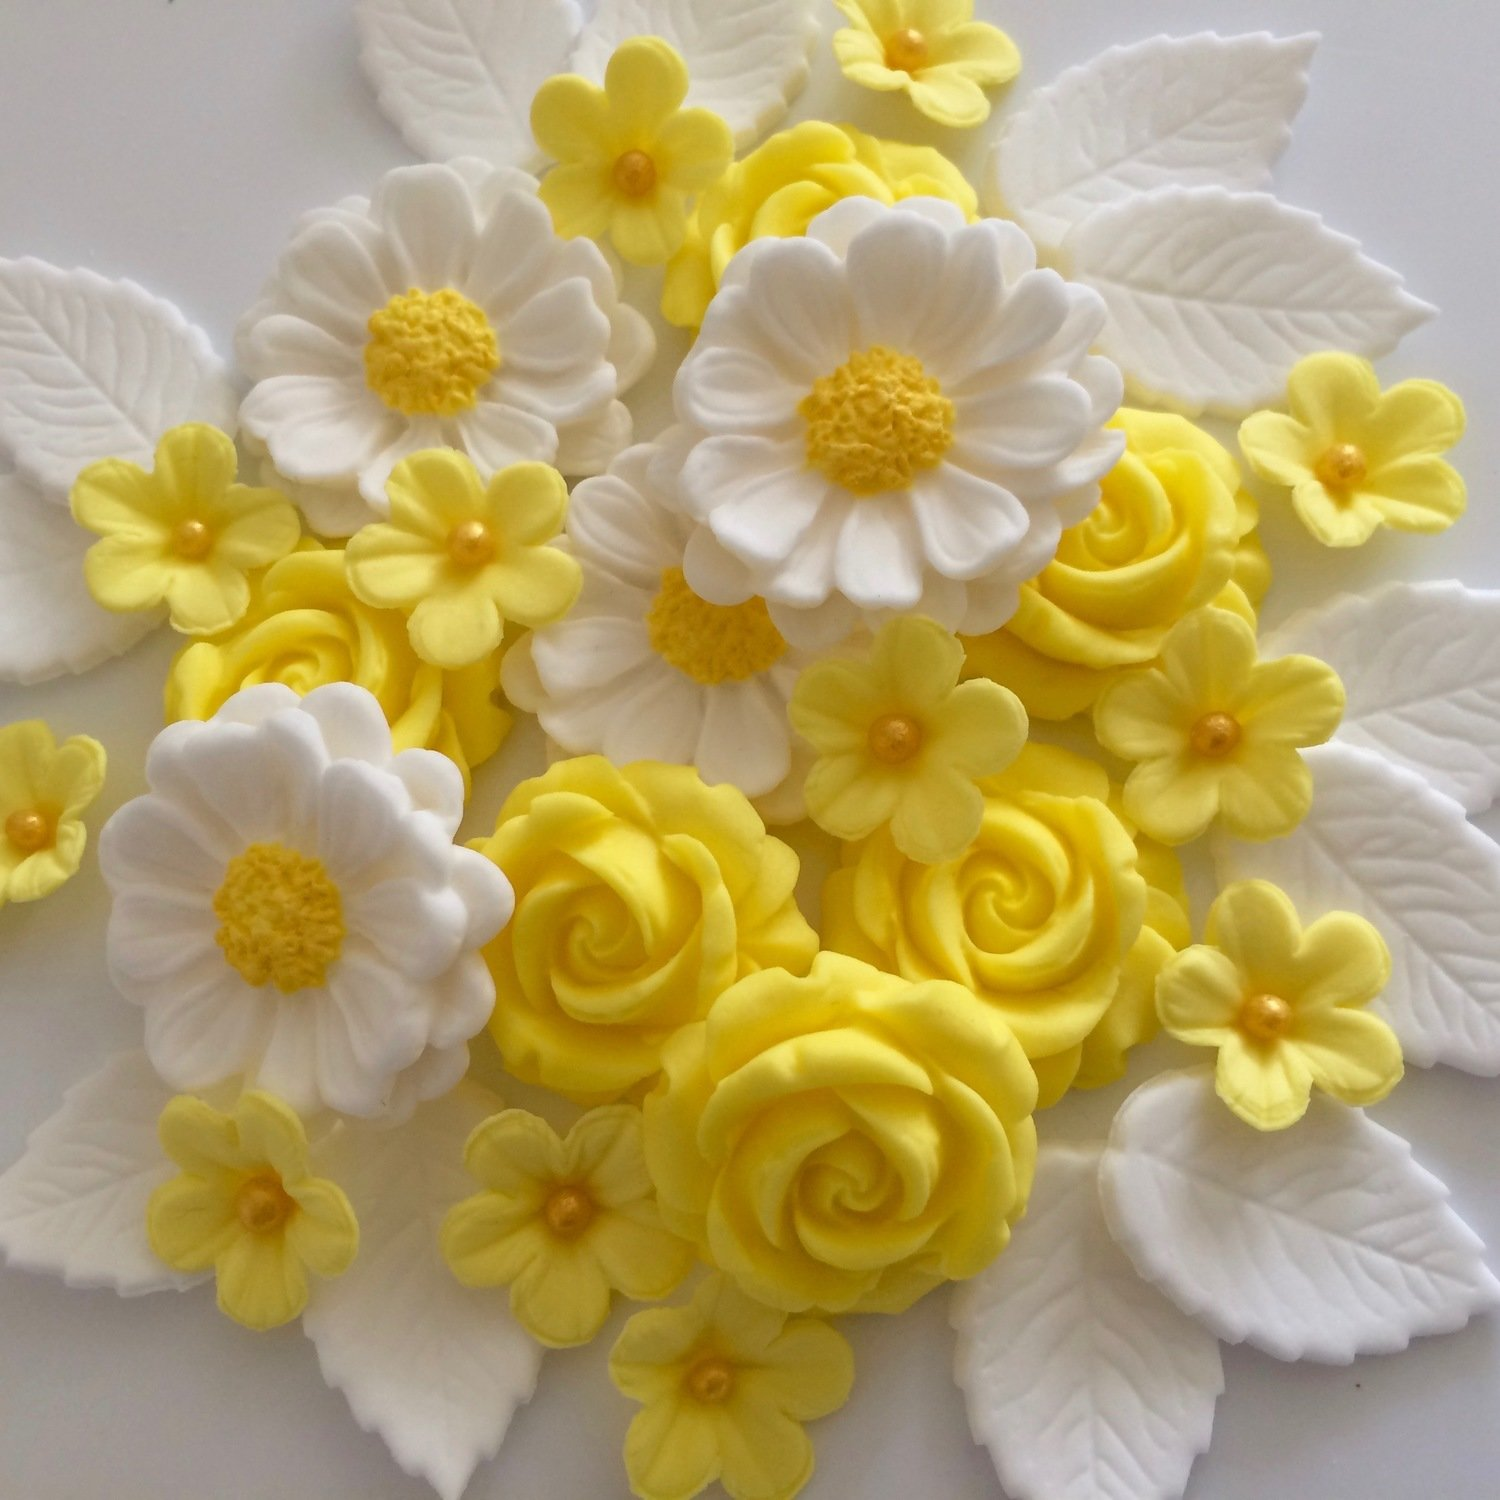 Lemon Rose Bouquet